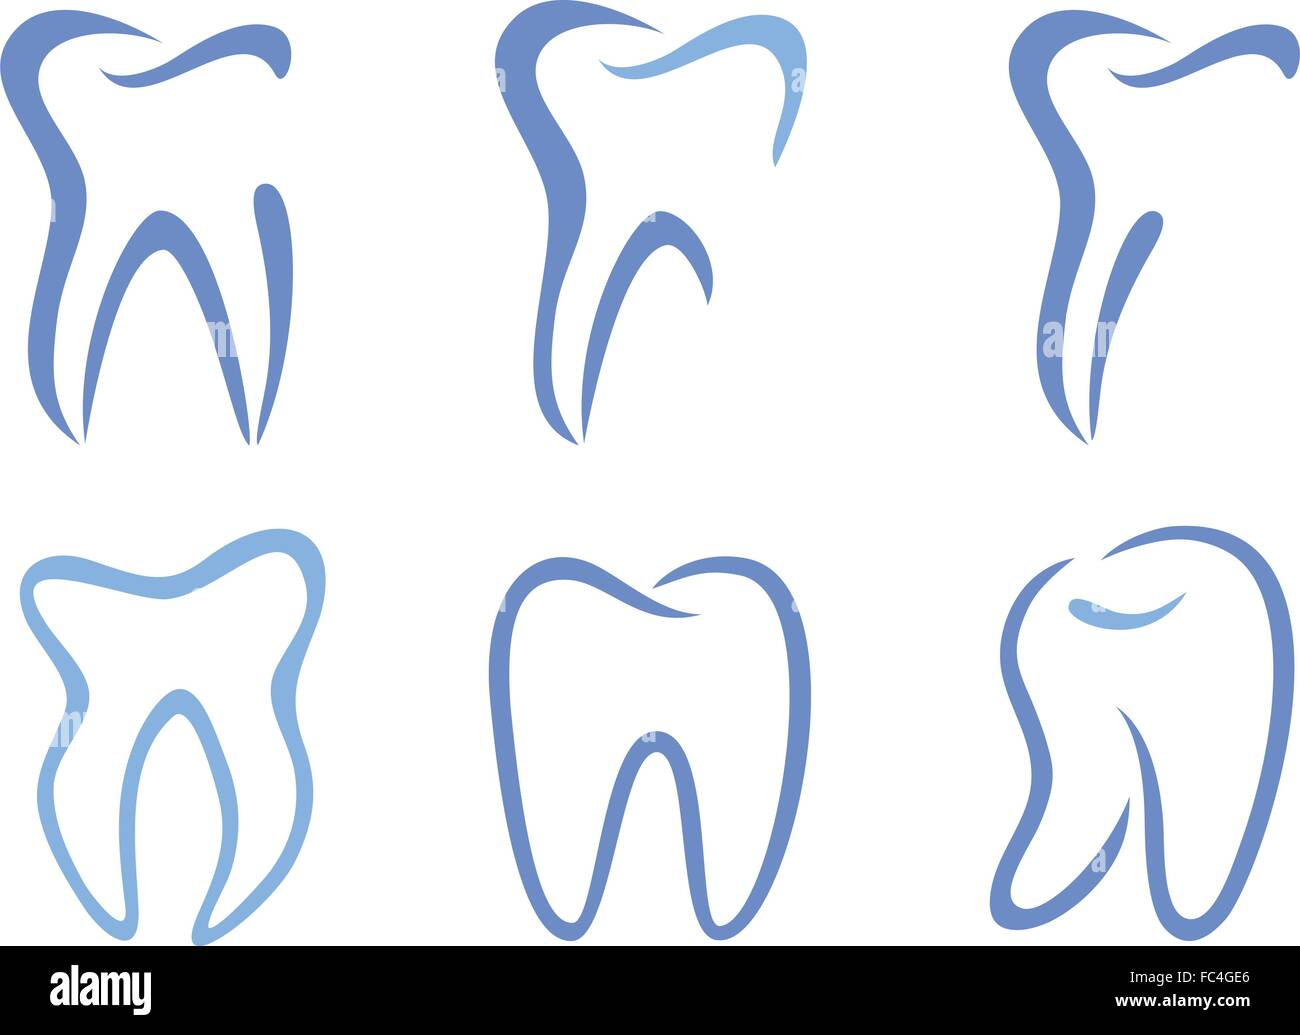 set of abstract tooth designs, vector illustration - Stock Image